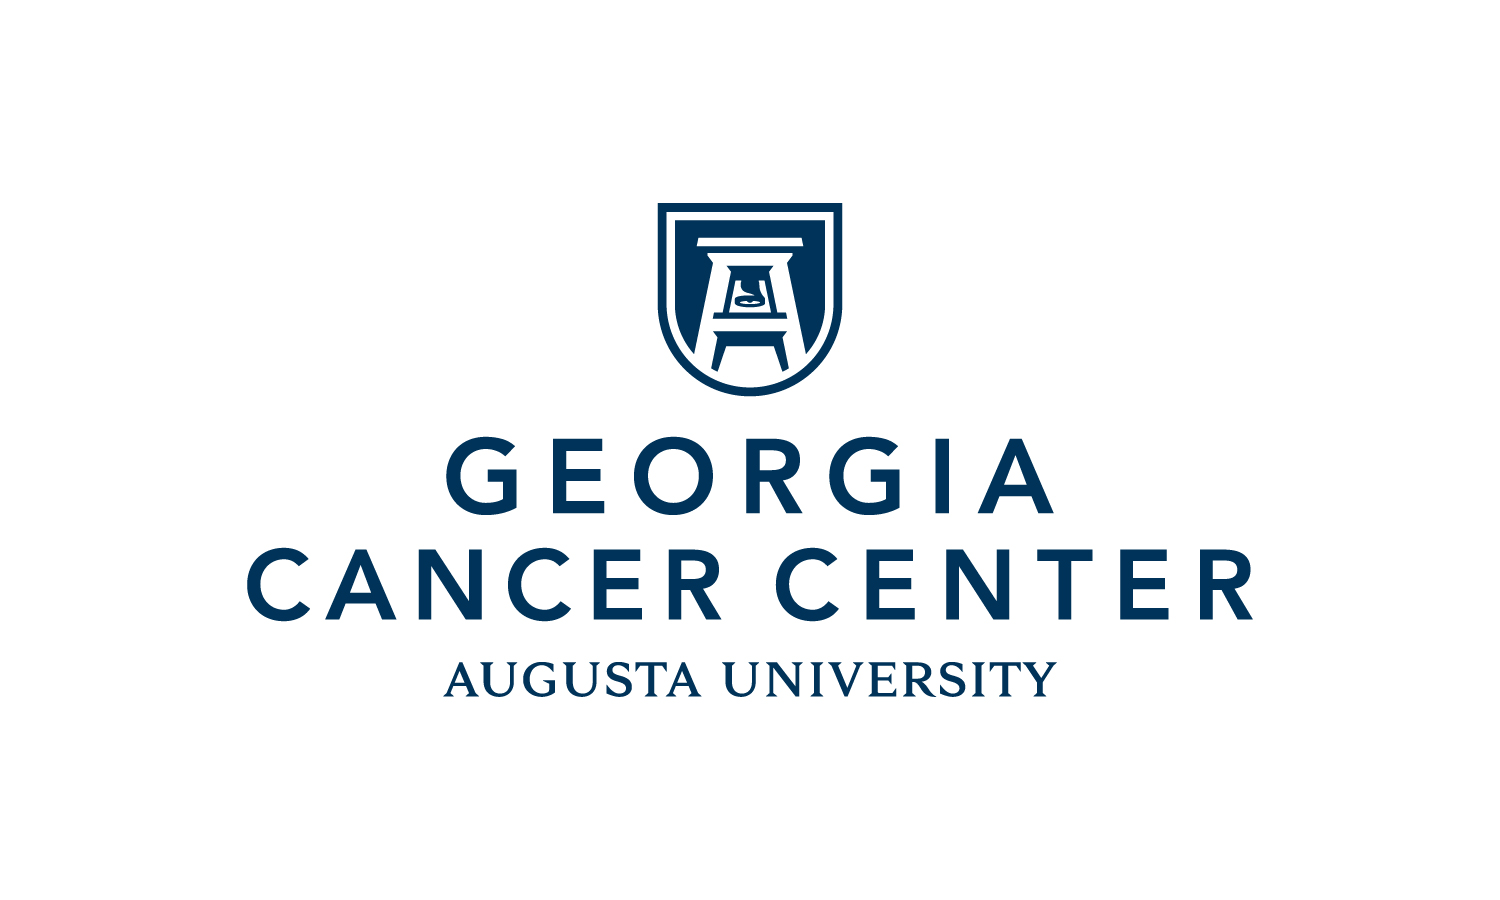 Augusta University Georgia Cancer Center